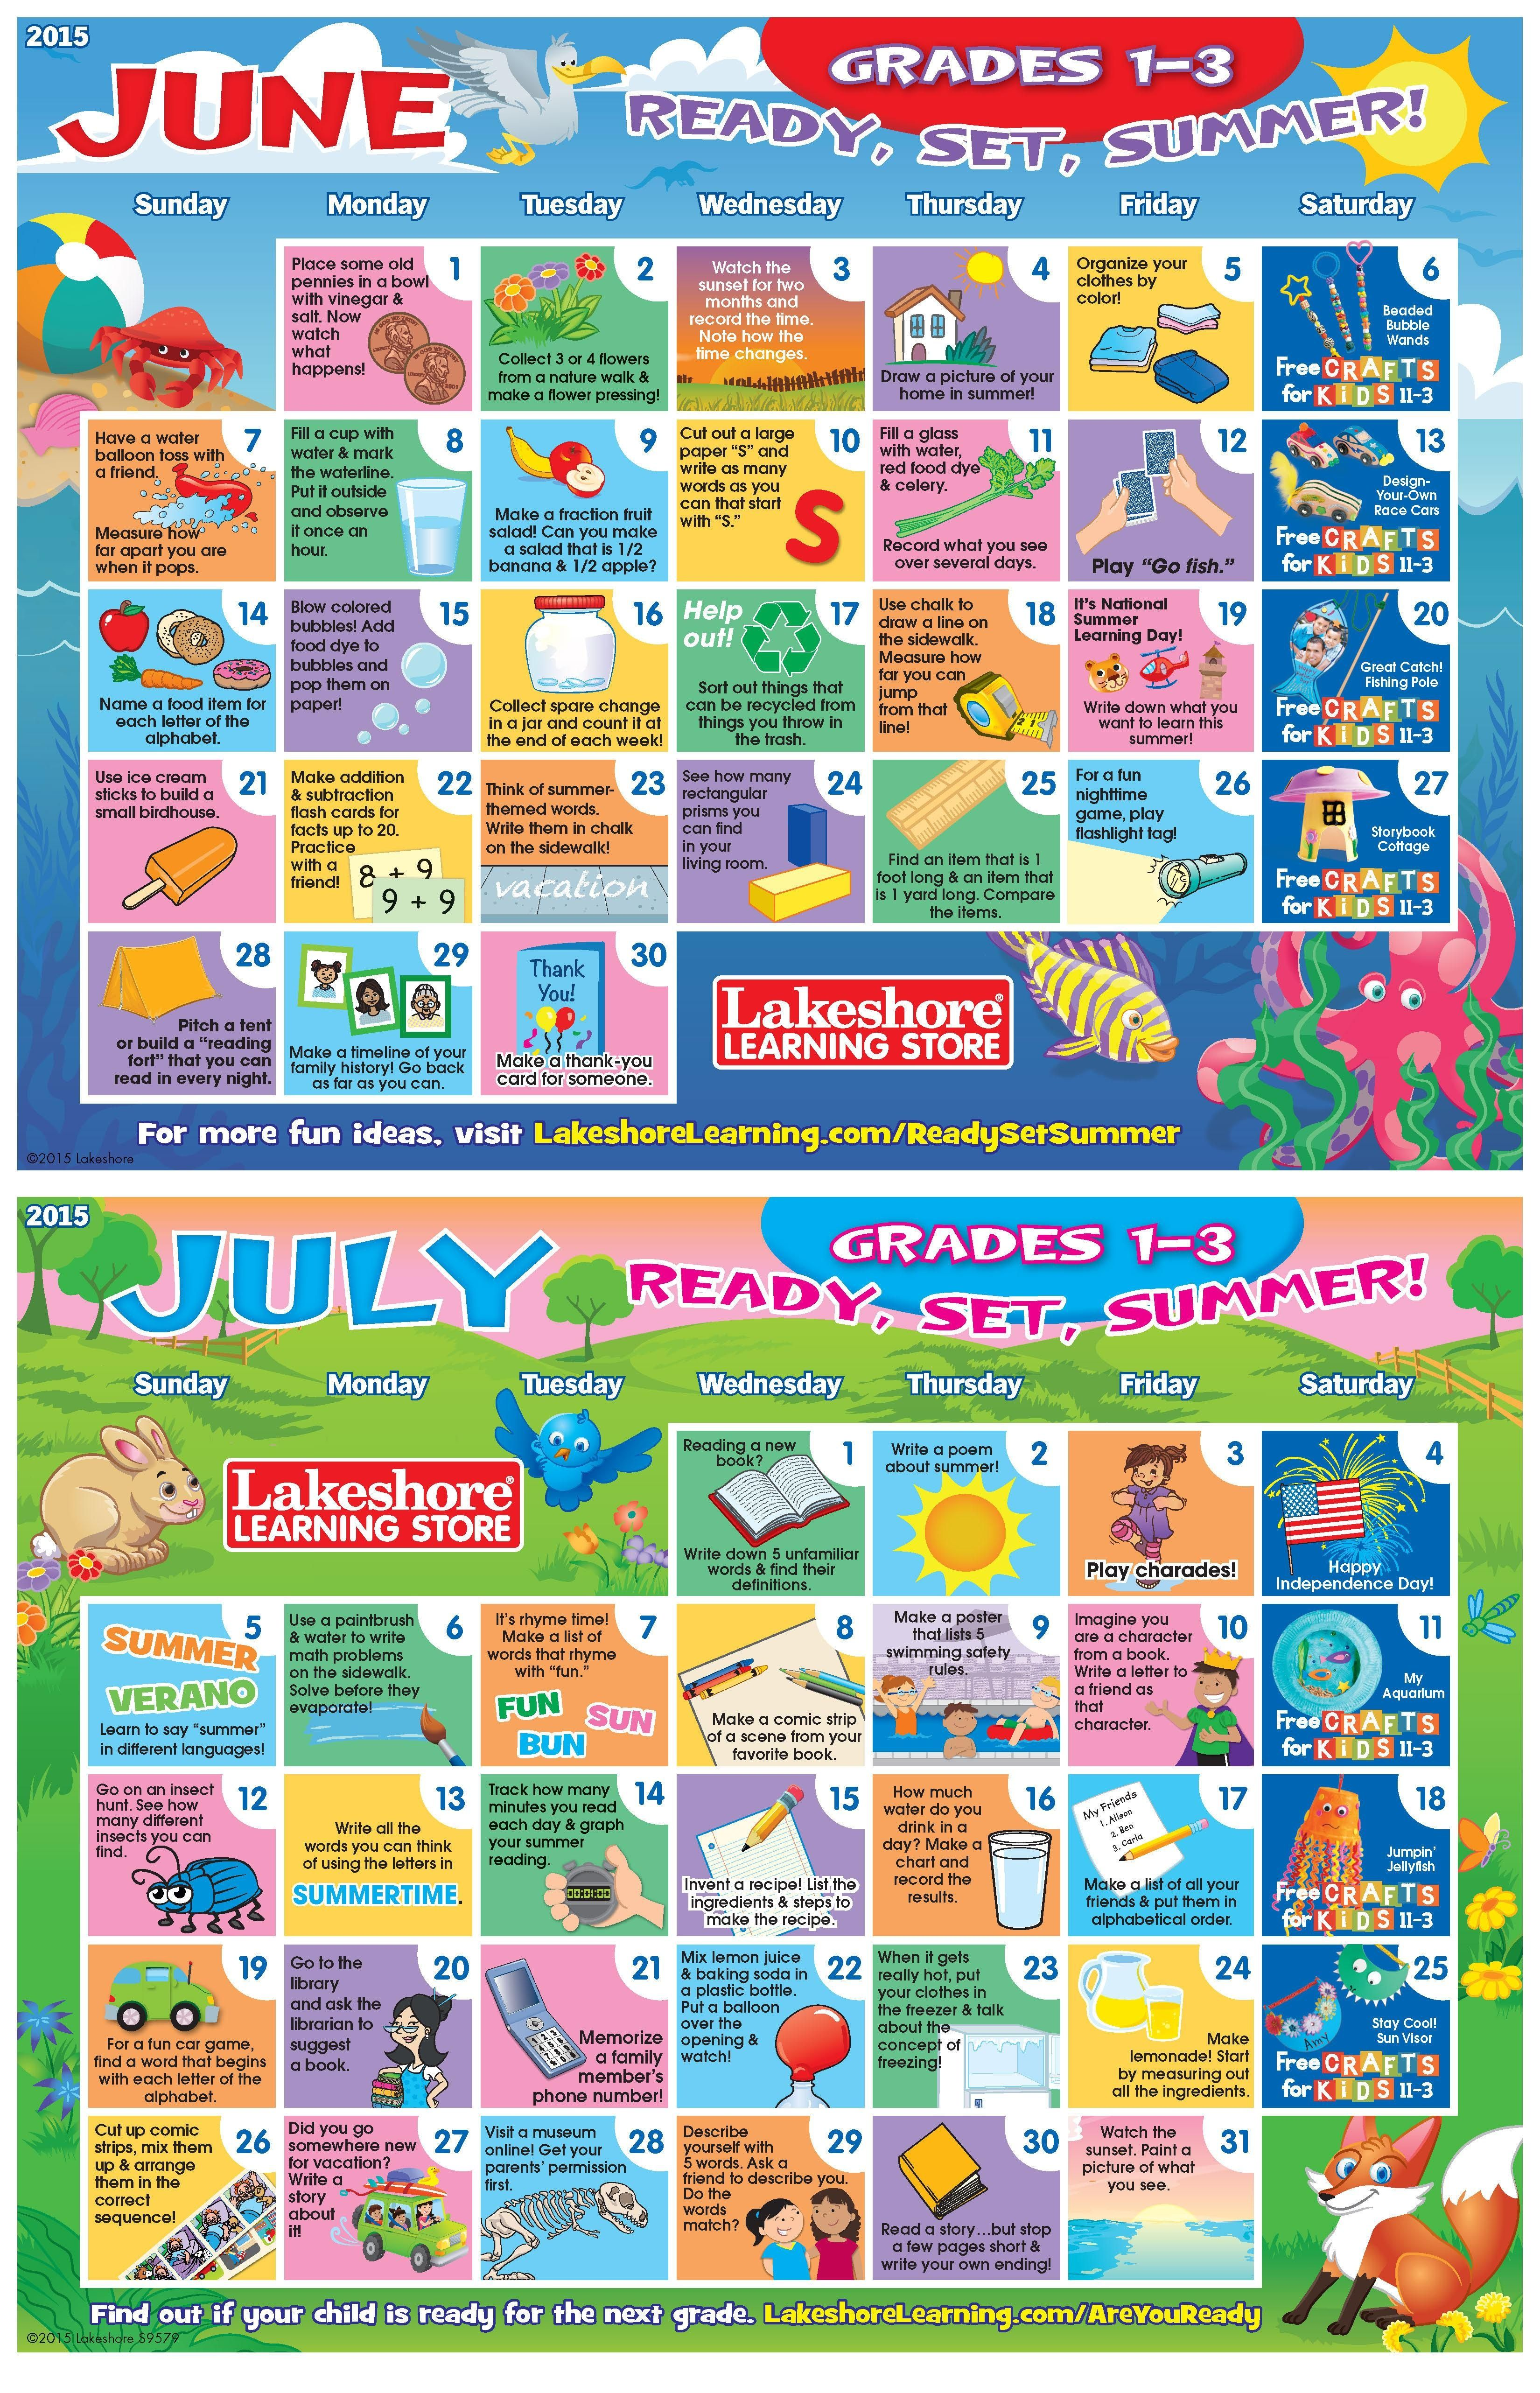 Download Now For Two Months Of Summer Activity Ideas For Grades 1